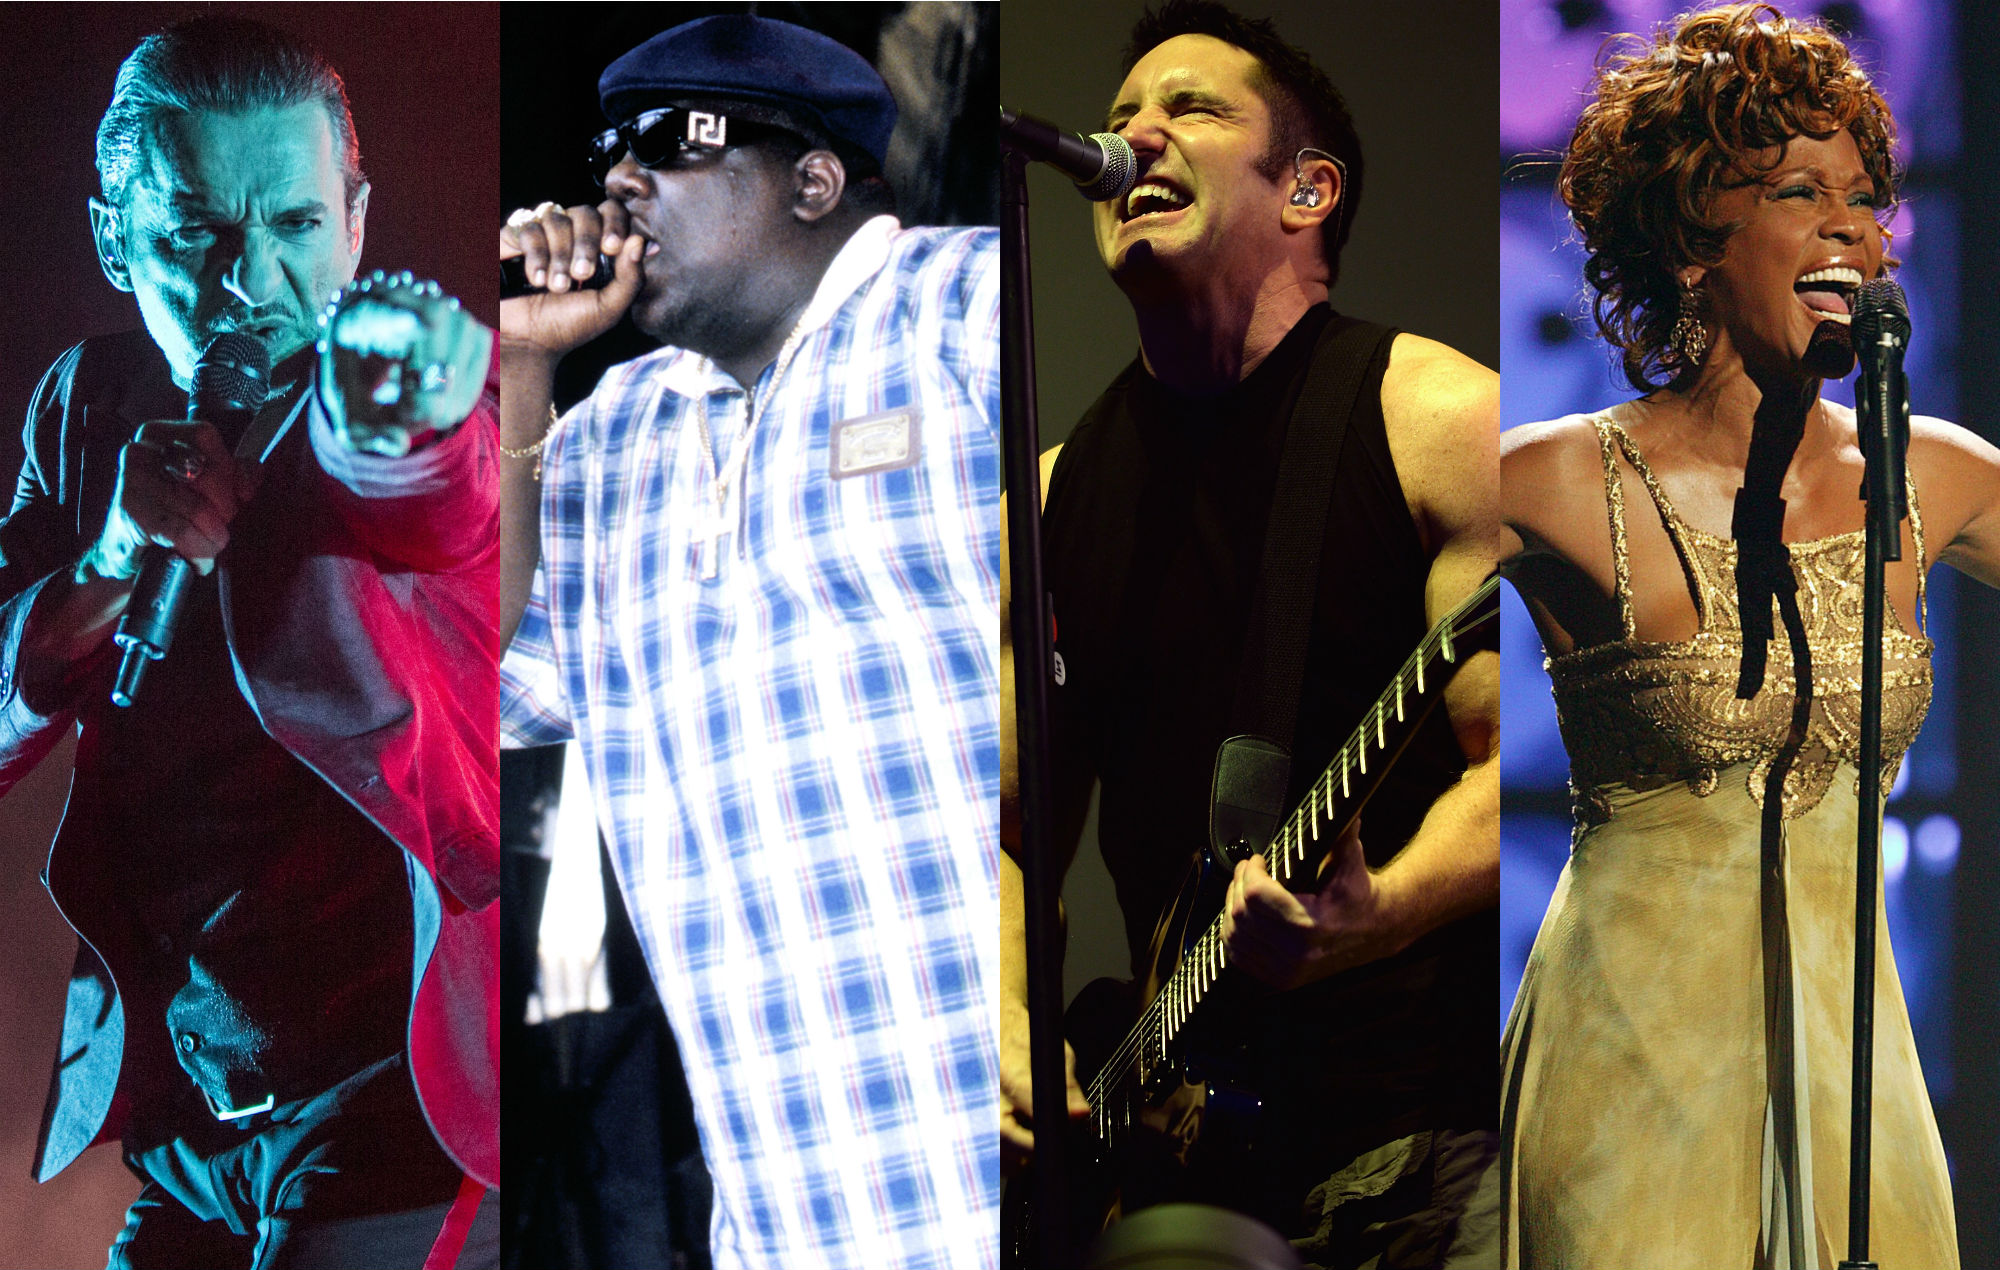 Depeche Mode, Notorious B.I.G., Nine Inch Nails and Whitney Houston lead the nominations for the Rock And Roll Hall Of Fame 2020